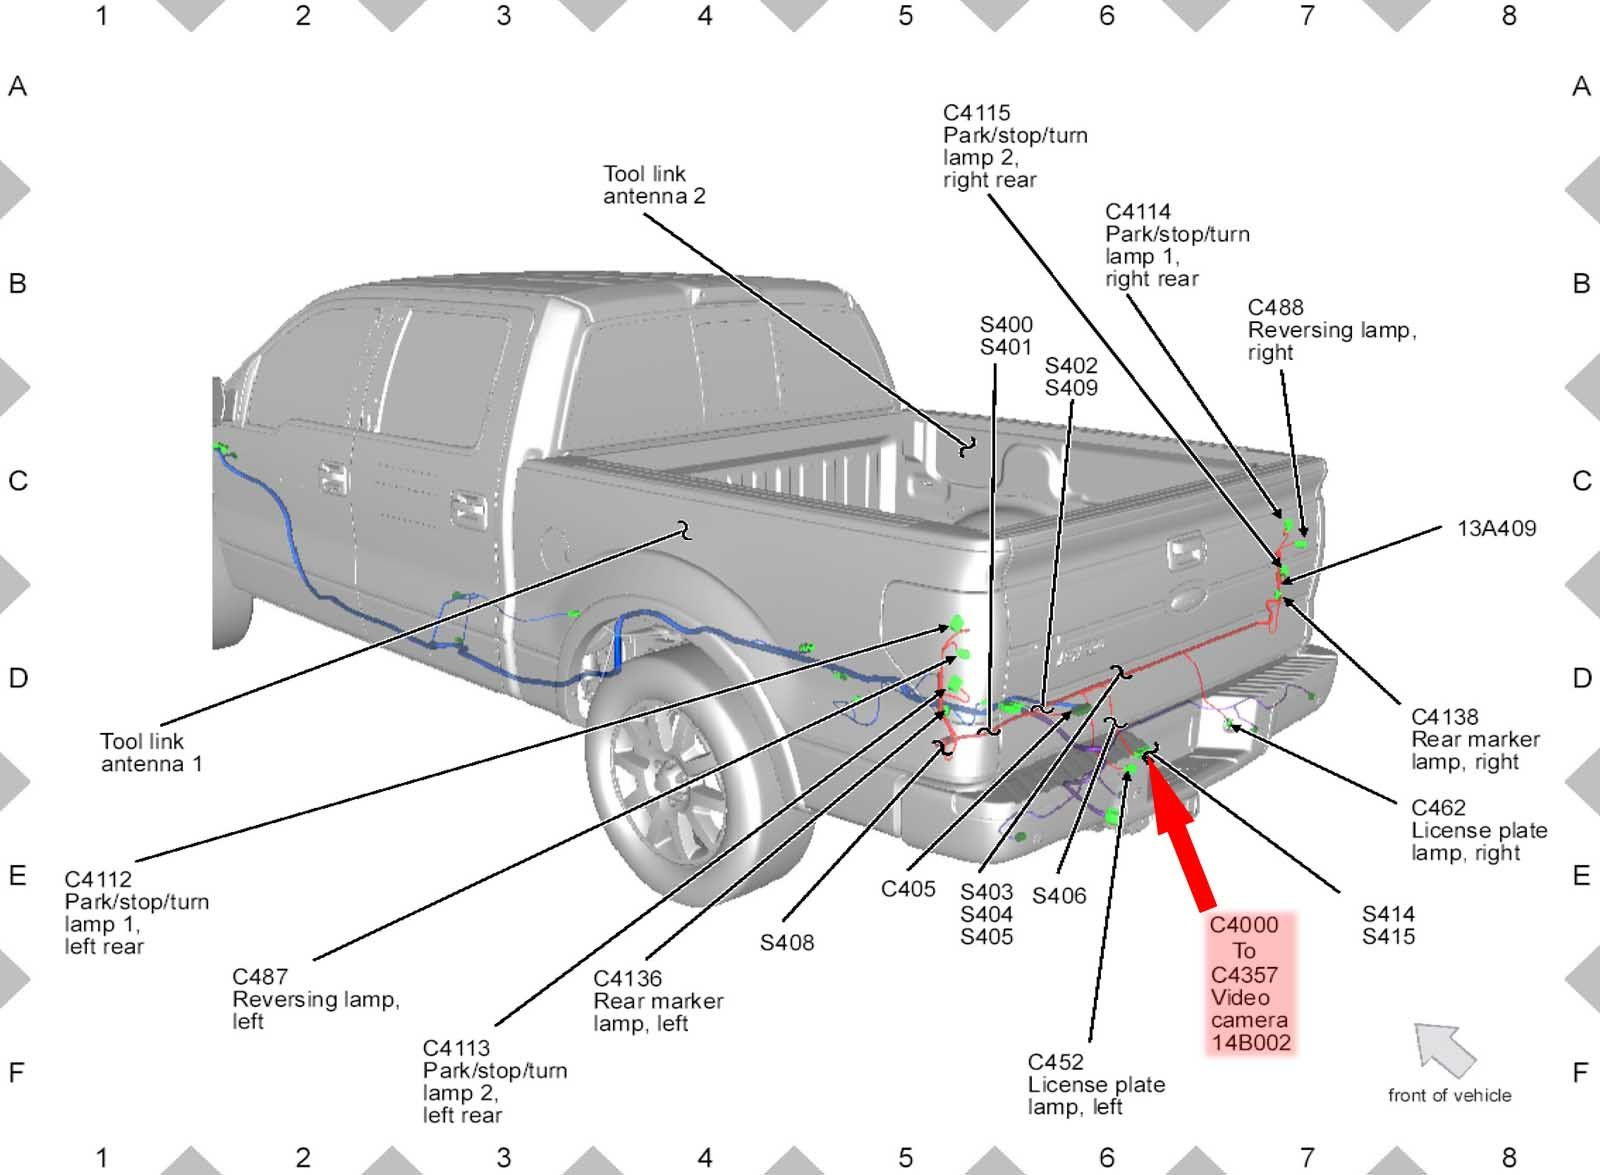 2005 f150 trailer wiring diagram led light circuit 12v can bliss be added page 2 ford forum community